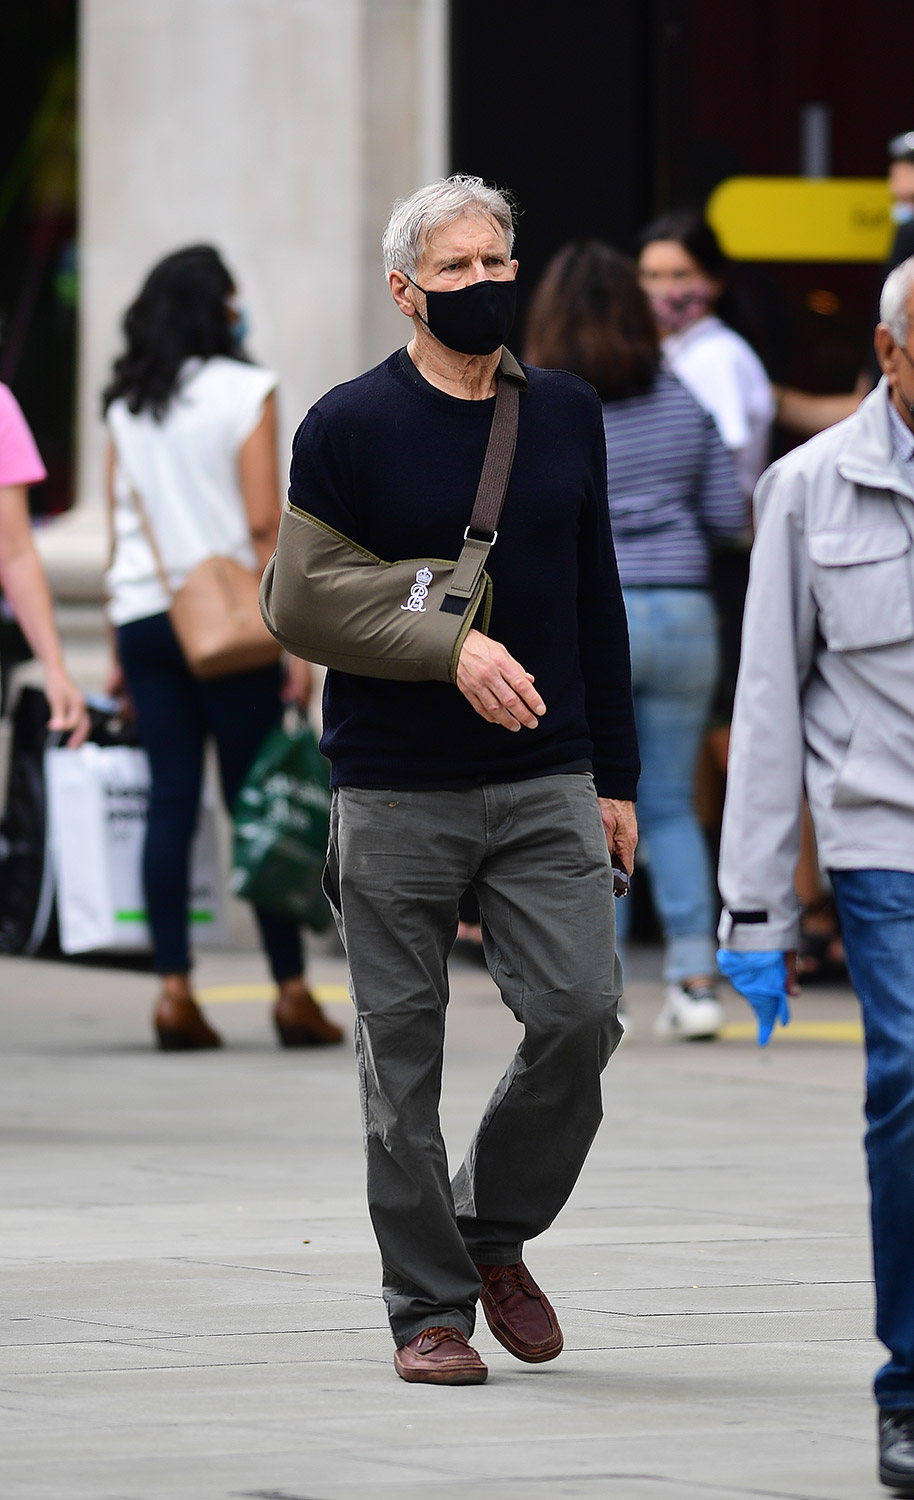 EXCLUSIVE: NO WEB BEFORE 6.15PM BST 3RD JULY 2021--  PREMIUM EXCLUSIVE RATES APPLY - Indiana Jones Actor And Hollywood Super Star Harrison Ford Seen For The First Time Since Surgery Wearing Shoulder Brace